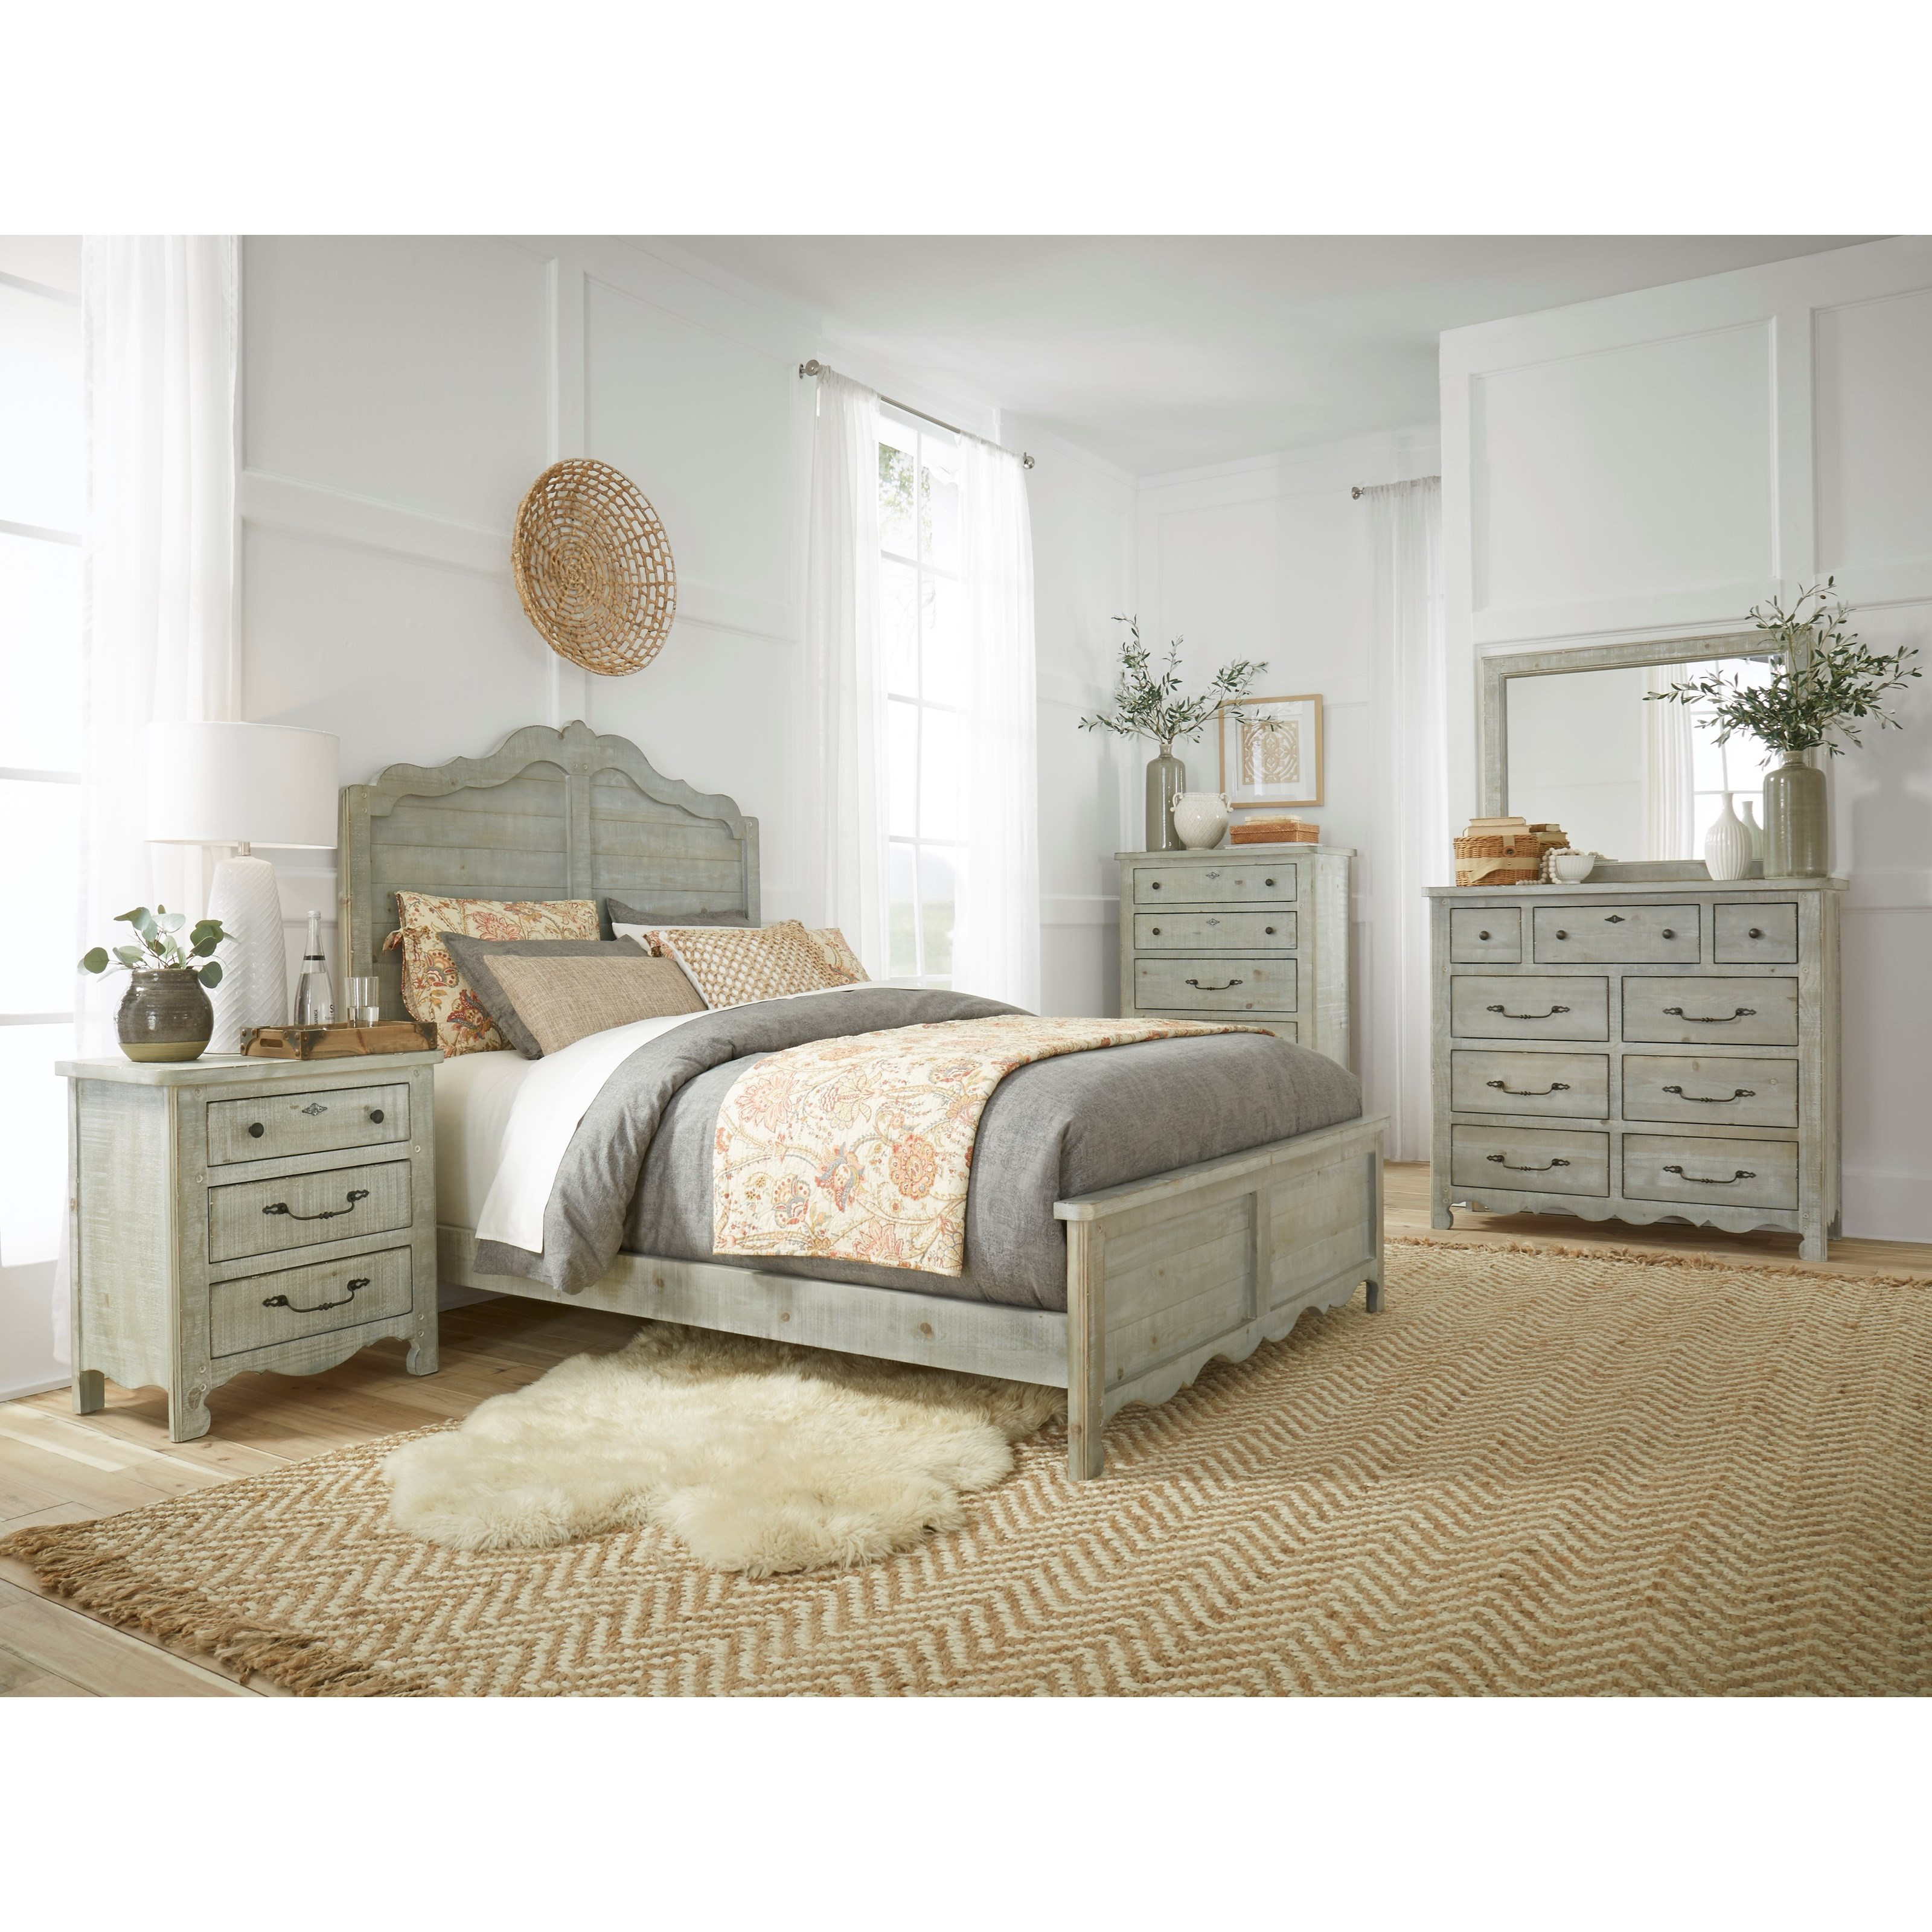 Chatsworth 7PC Queen Bedroom Group by Progressive Furniture at Value City Furniture